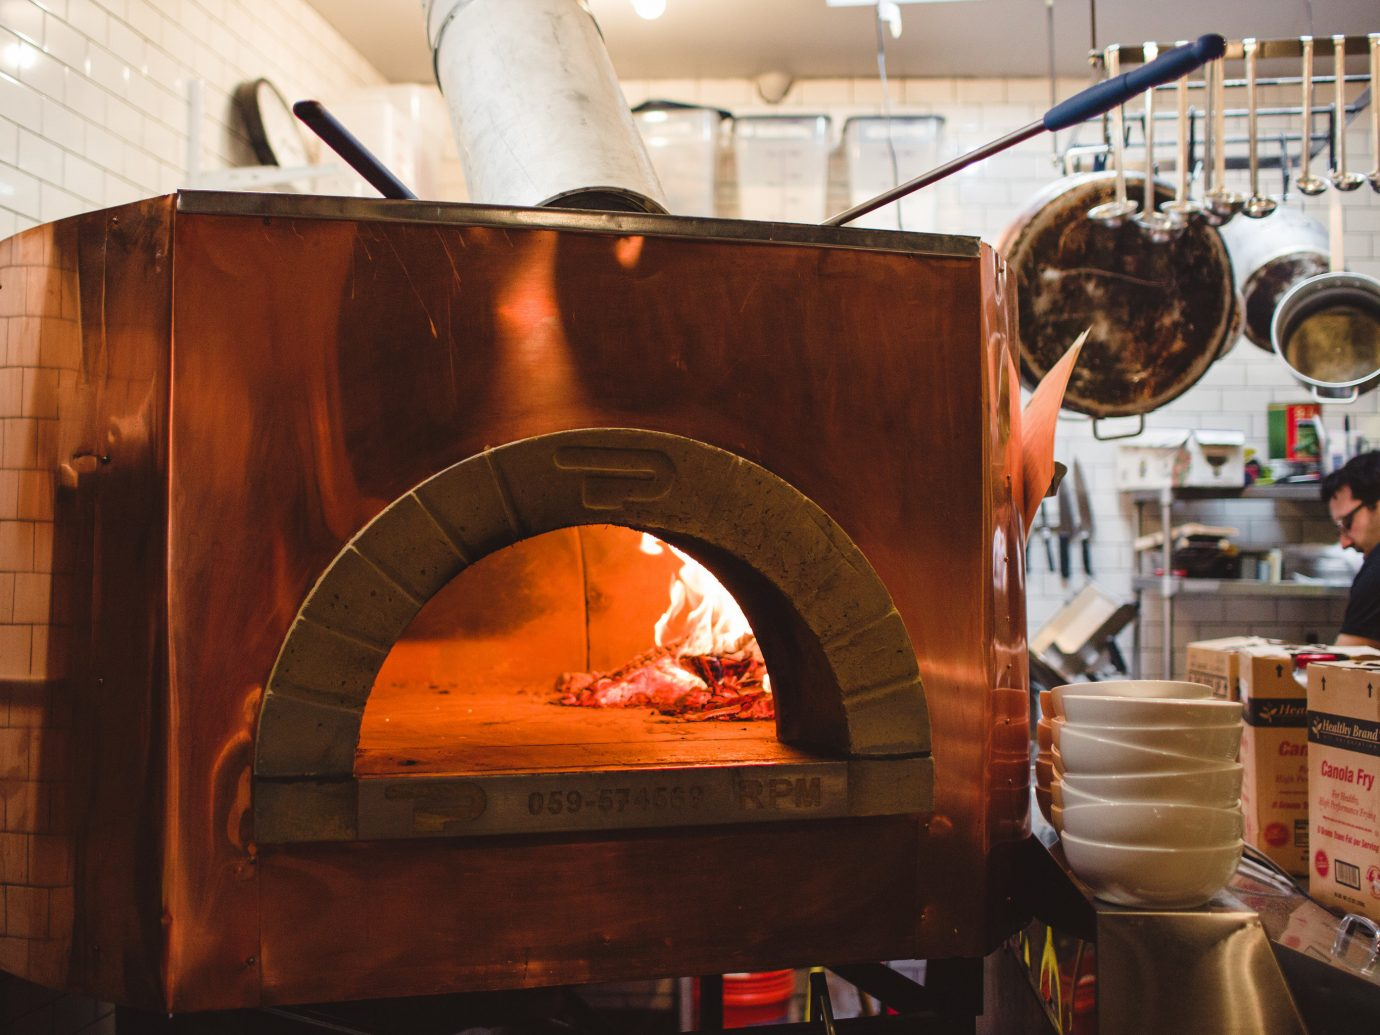 Brooklyn City Food + Drink NYC masonry oven wood burning stove kitchen appliance heat hearth home appliance oven